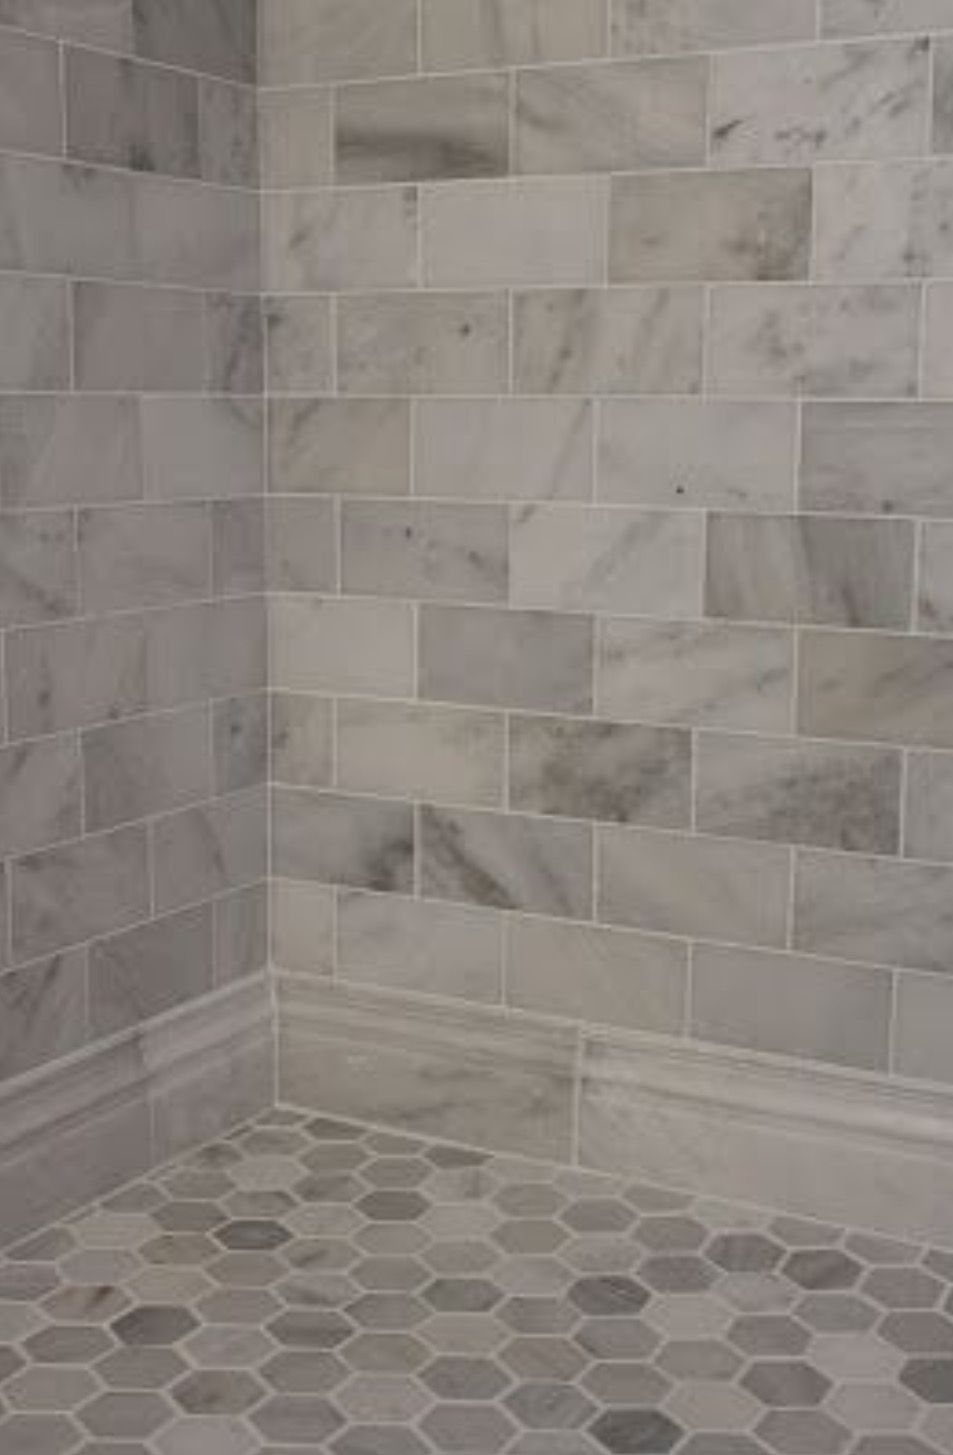 Carrera Marble Subway Tiles And Honed Marble Hexagon Floor Tiles